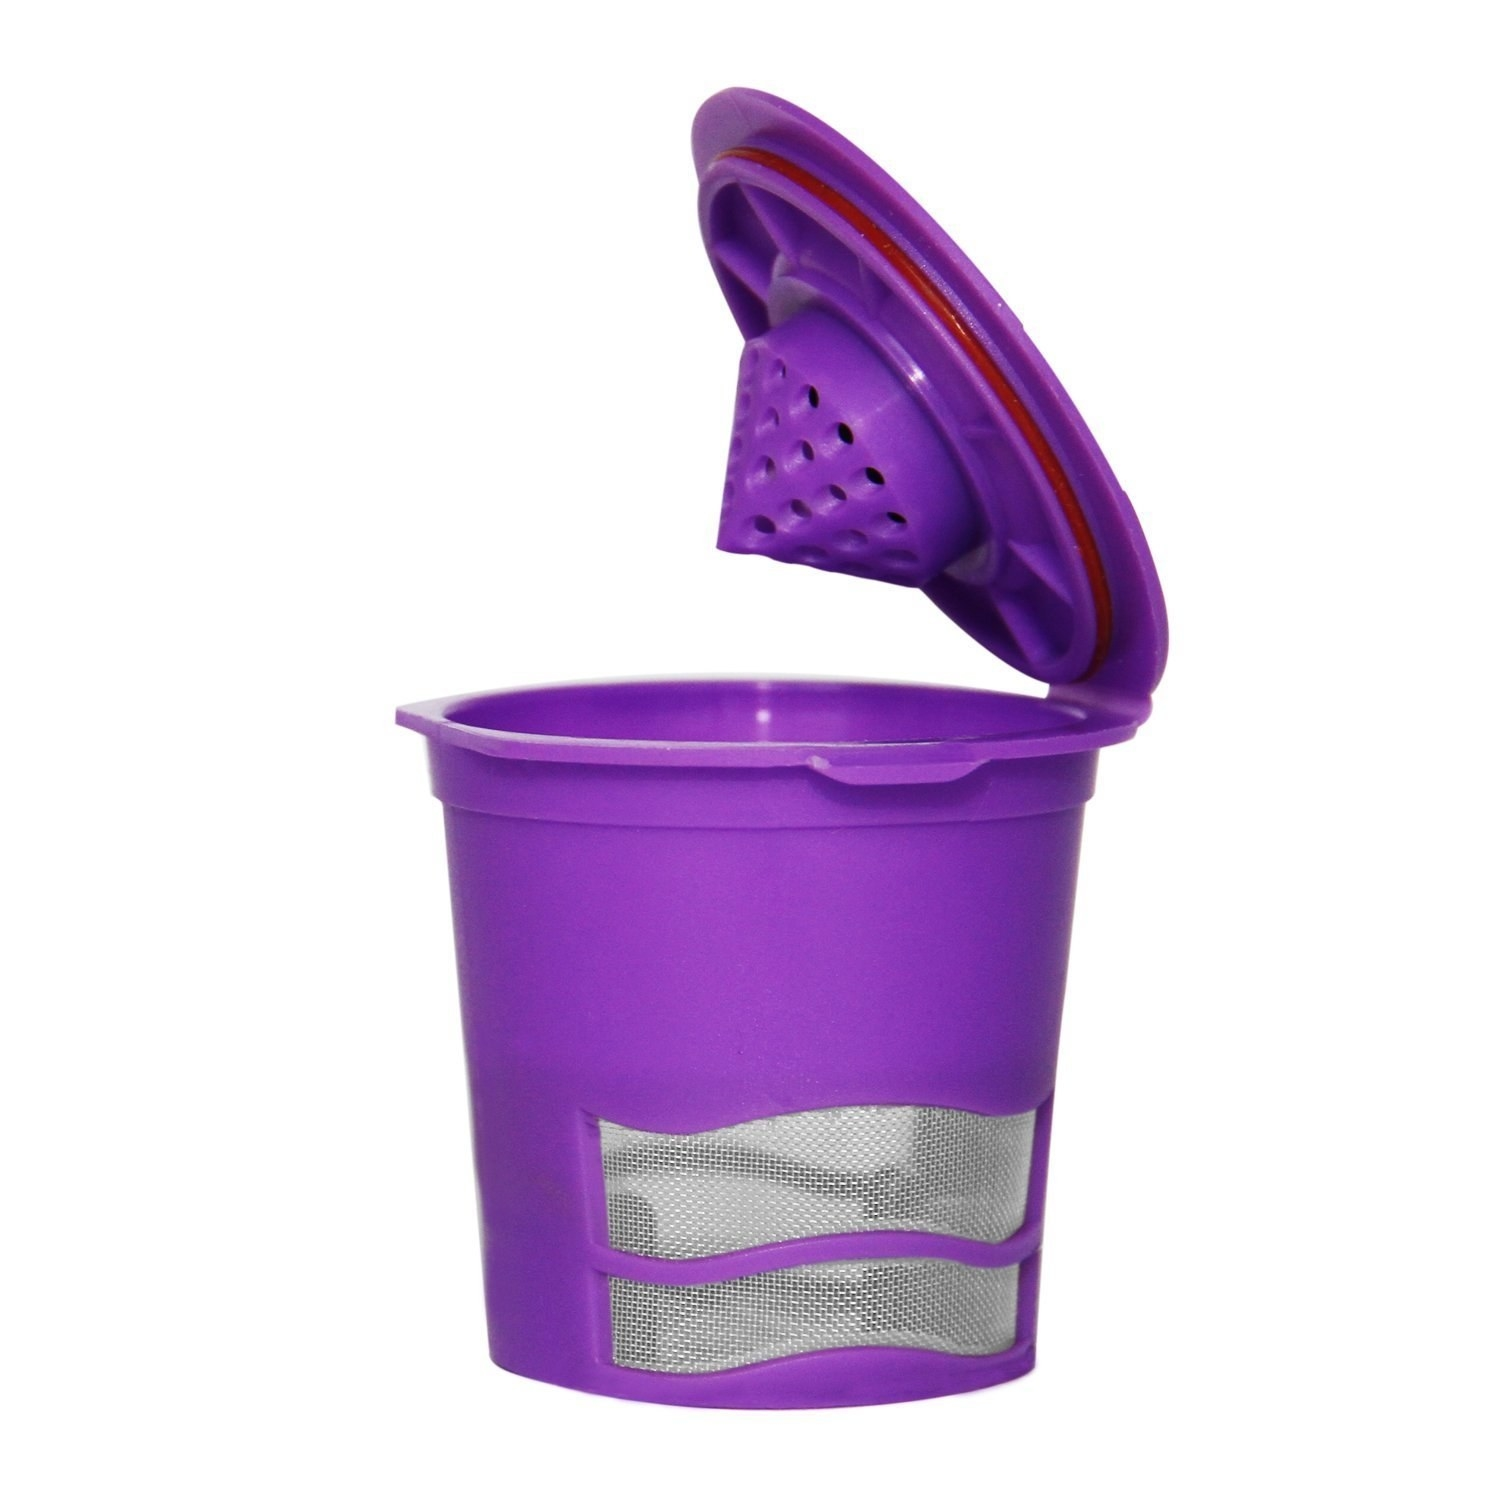 The purple and mesh pod with a lid you can open to fill with coffee